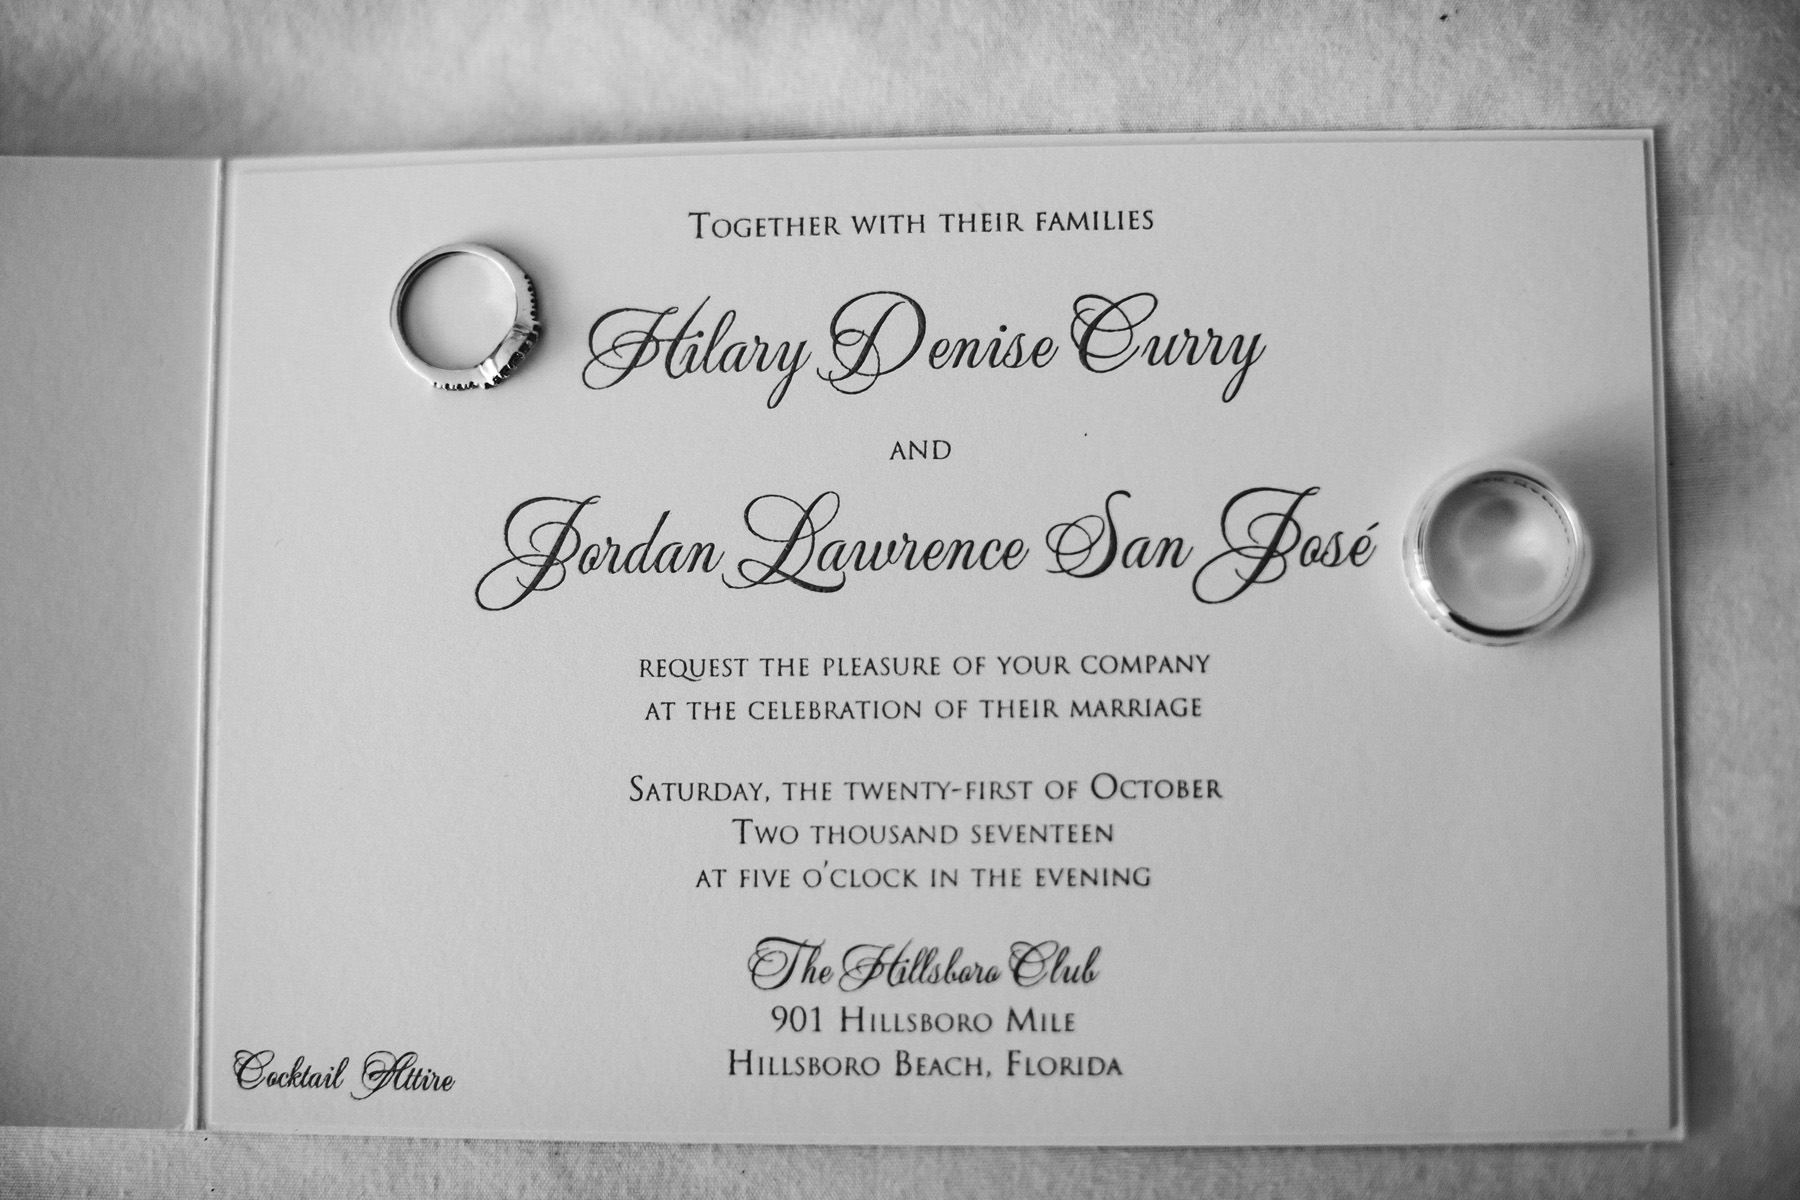 invitation-details-wedding-day-tiny-house-photo.jpg